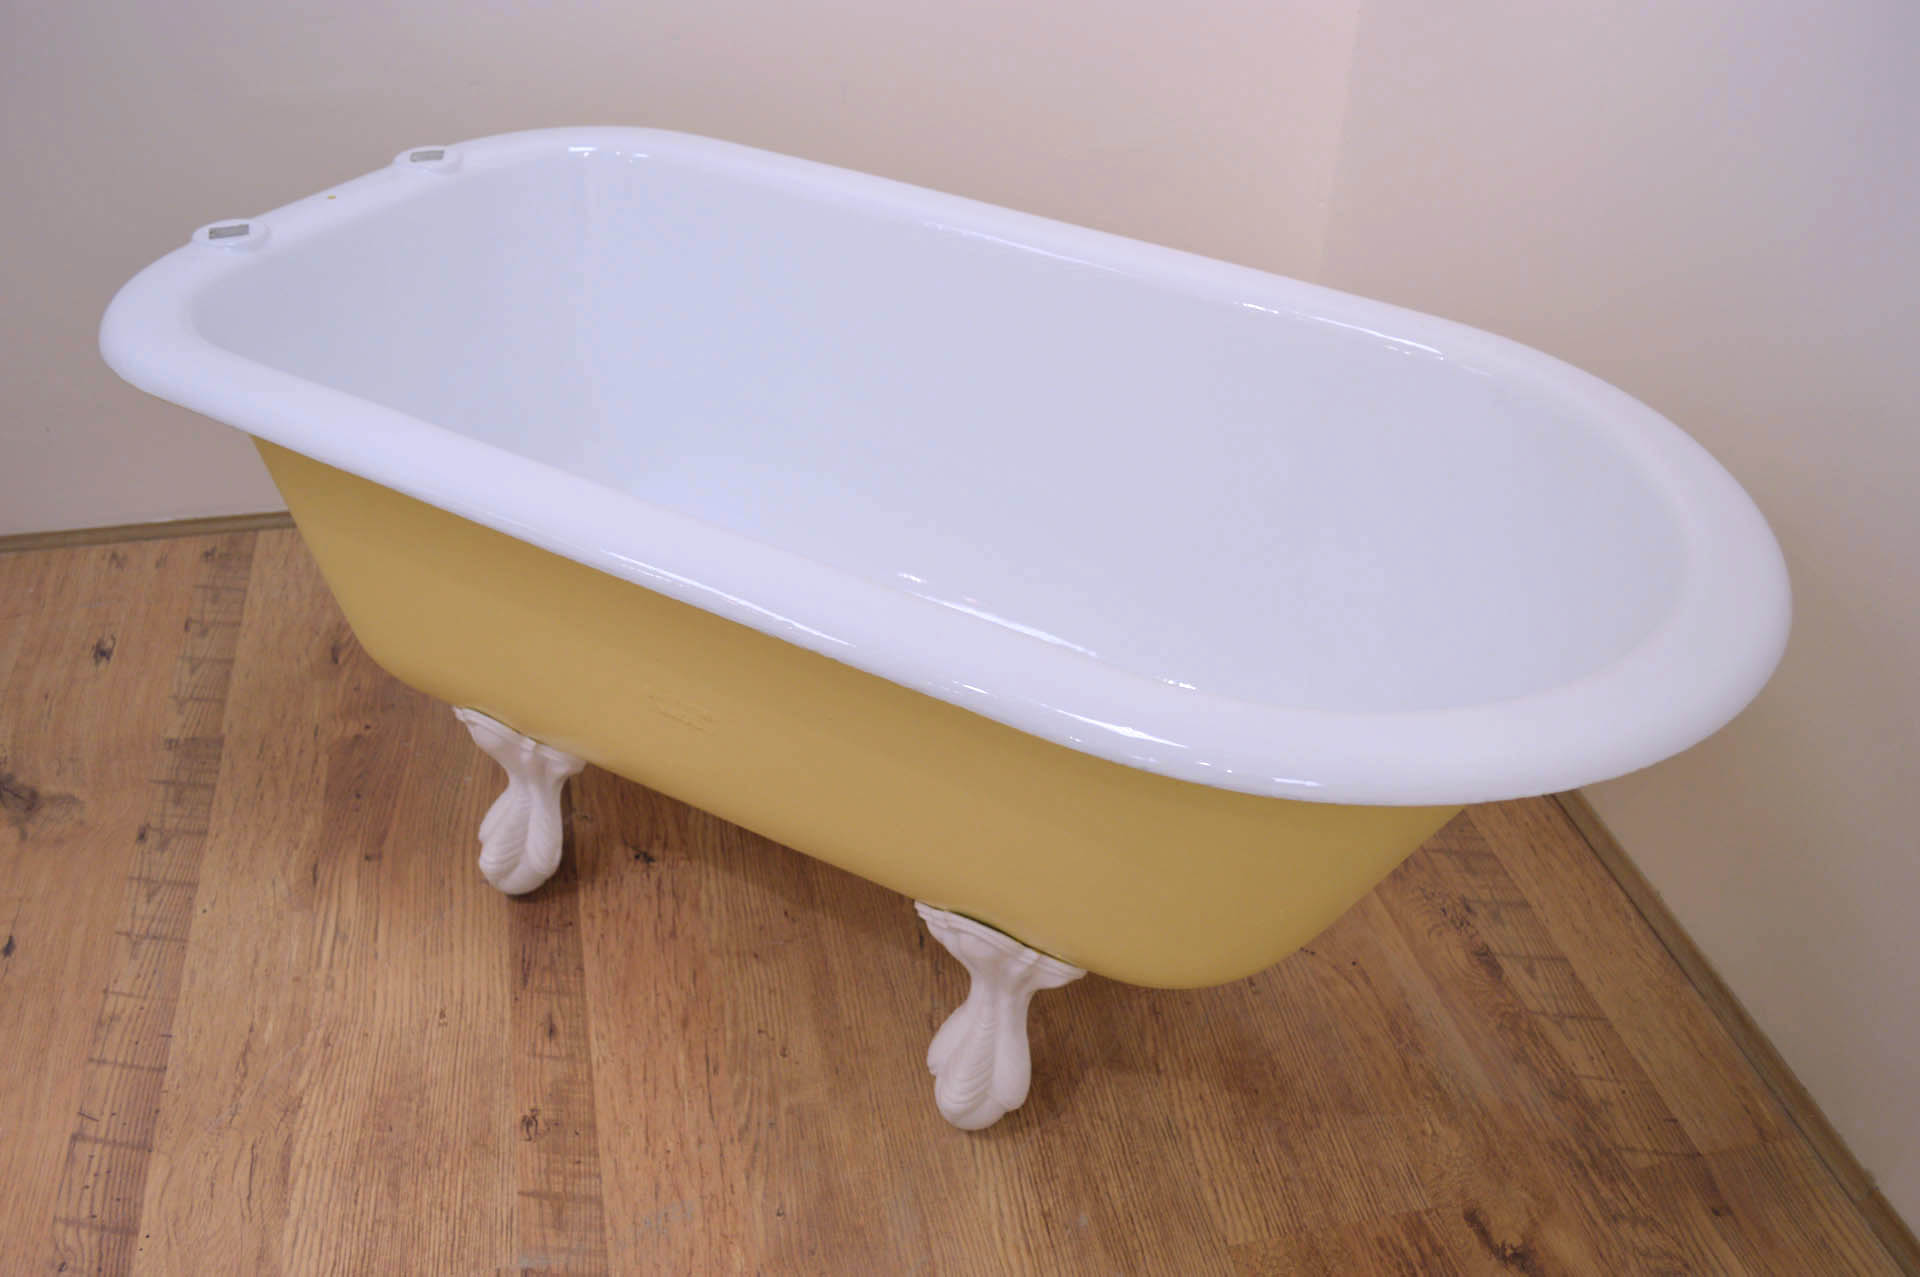 Cast Iron Bath for Sale - Shanks Child Bath - Dayroom Yellow